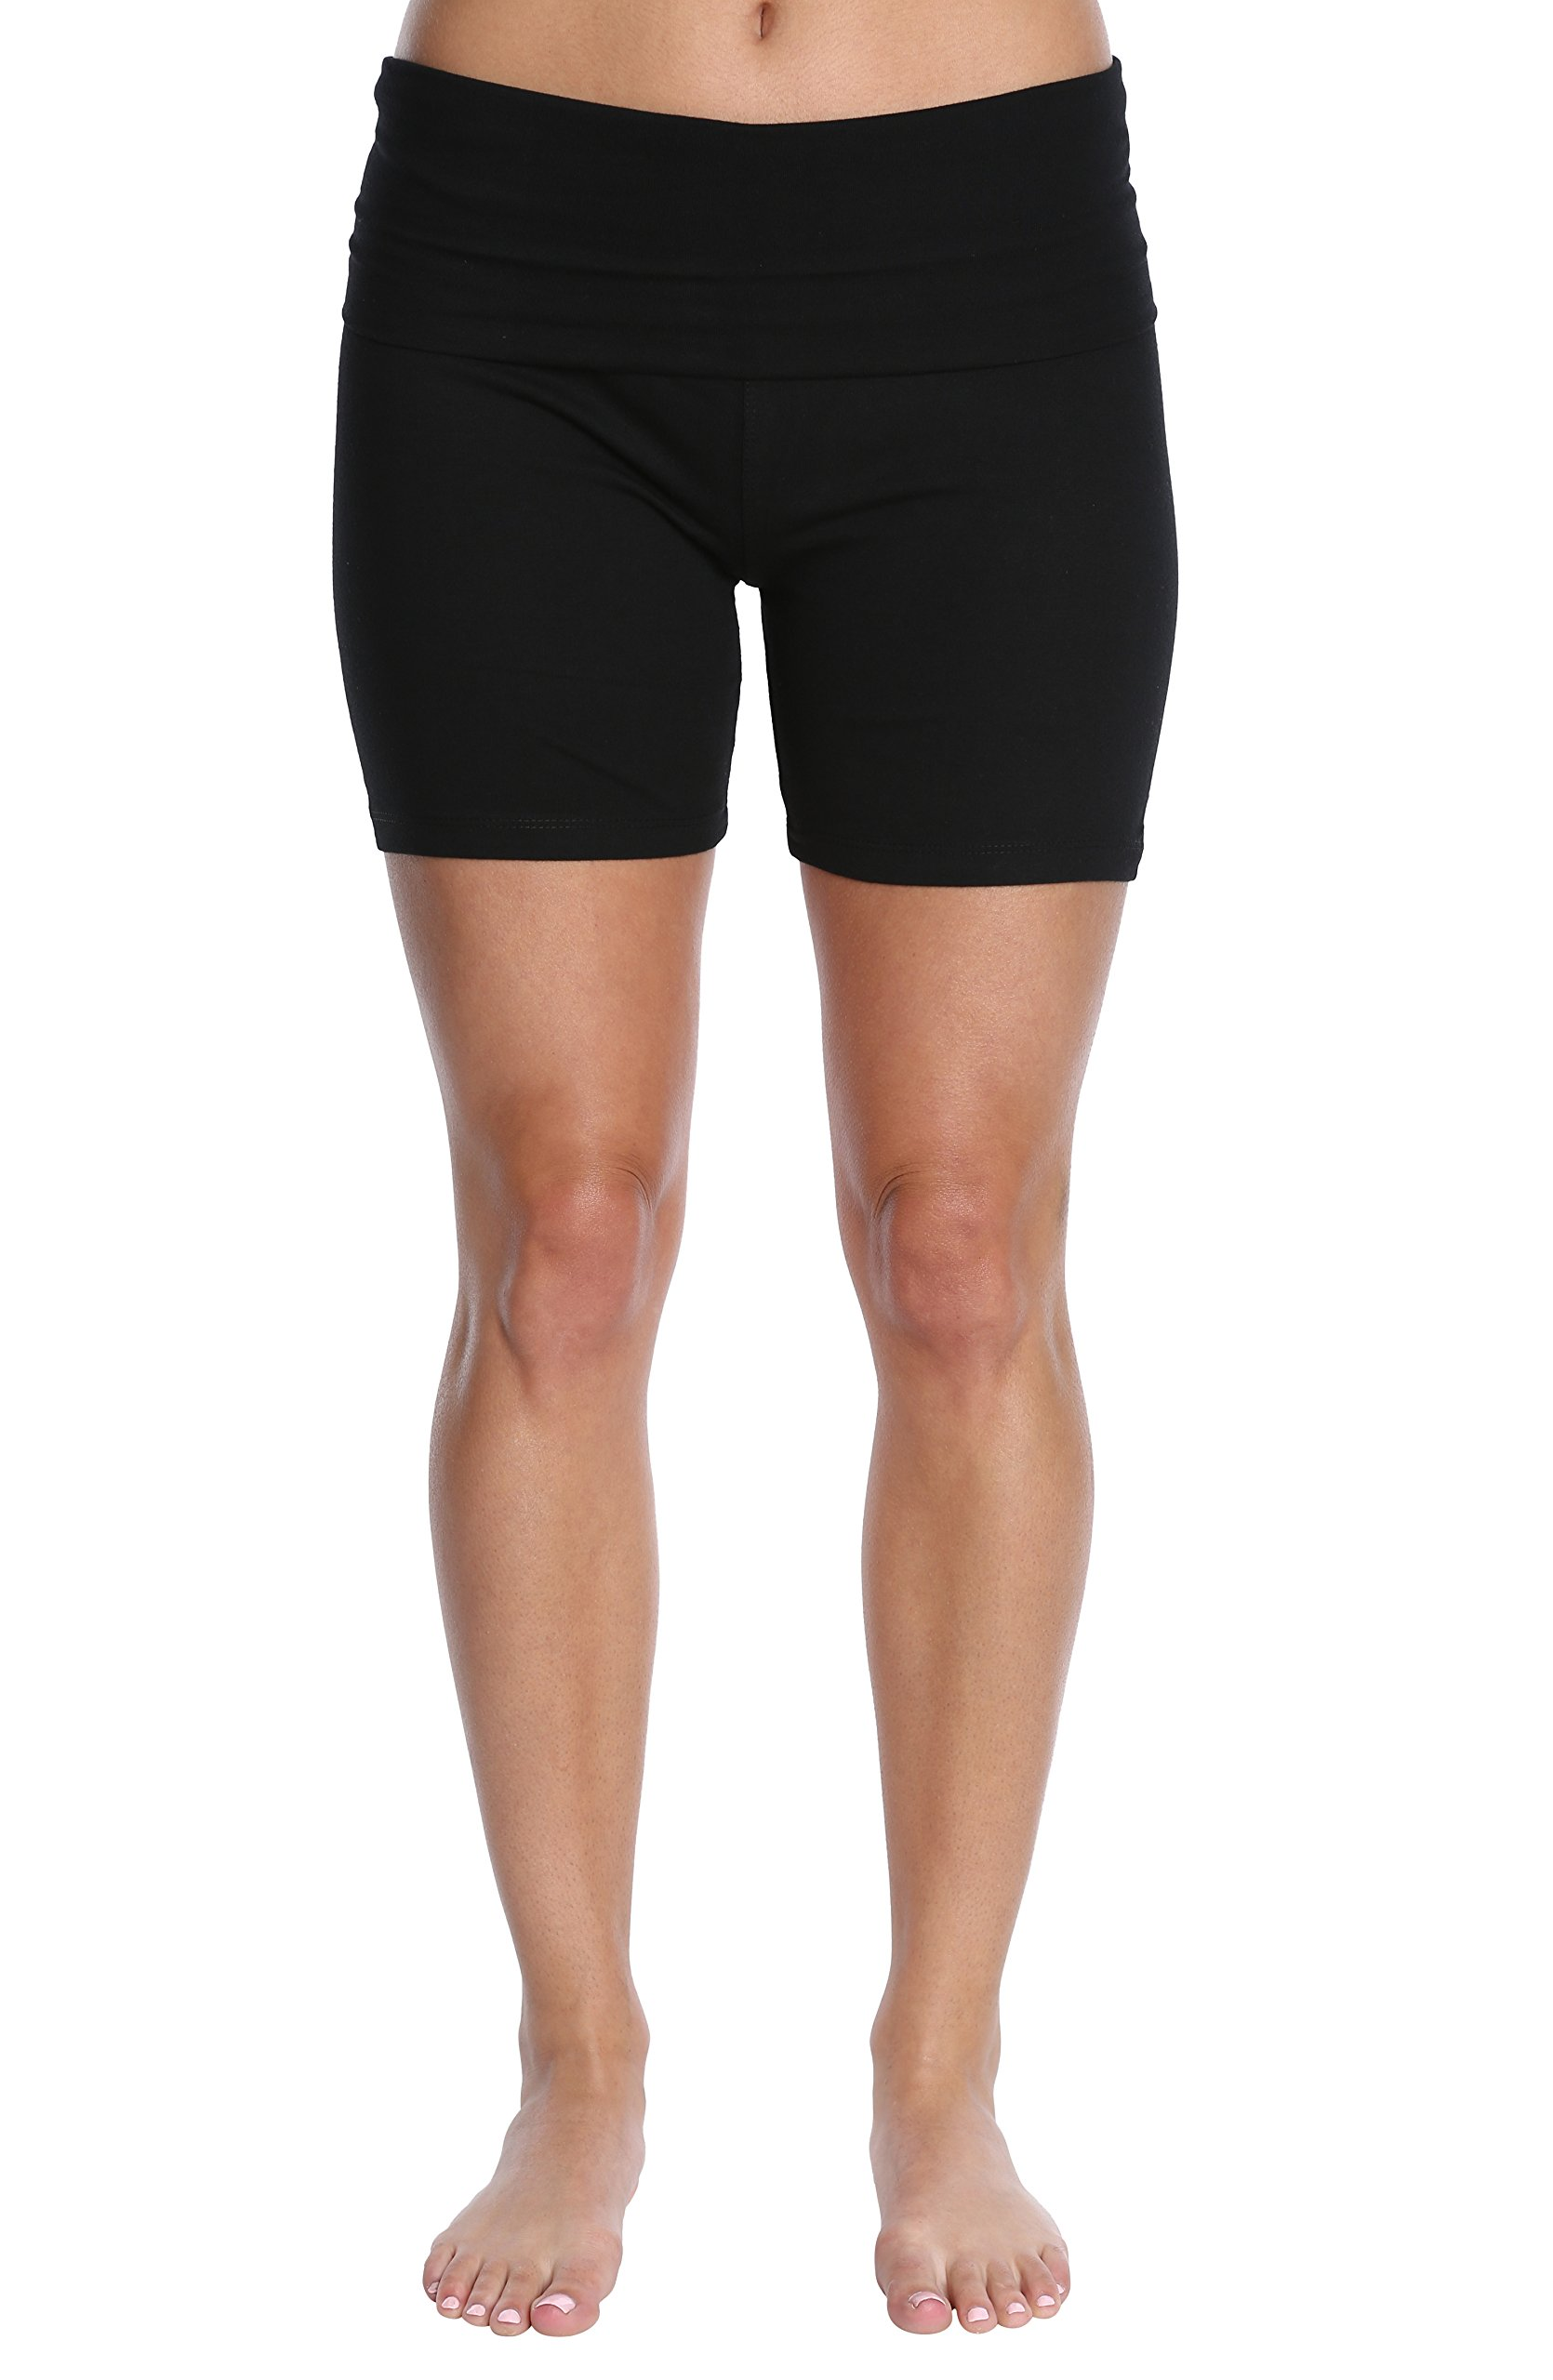 Nouveau Women's Workout Active Yoga Shorts w/Fold Over Waistband - Ladies Casual Loungewear